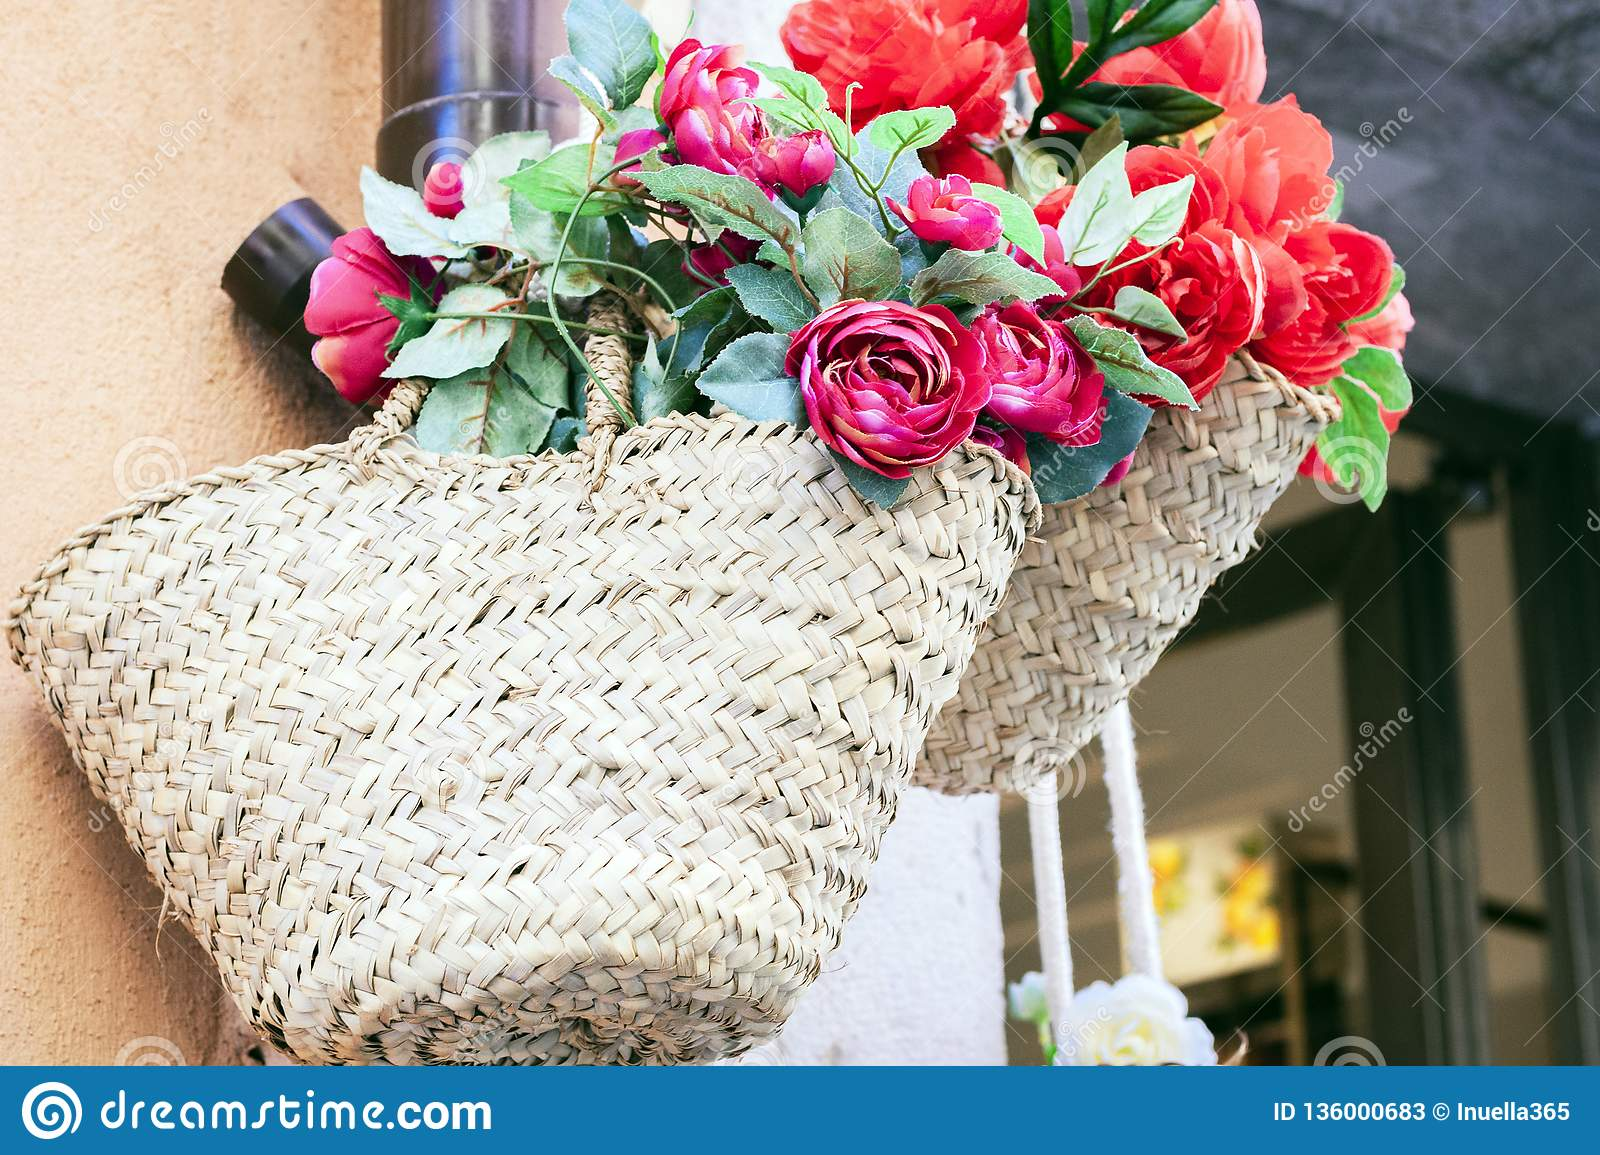 Summer wicker bags made of straw and rattan with textile flowers on the market in Taormina, Sicily, Italy